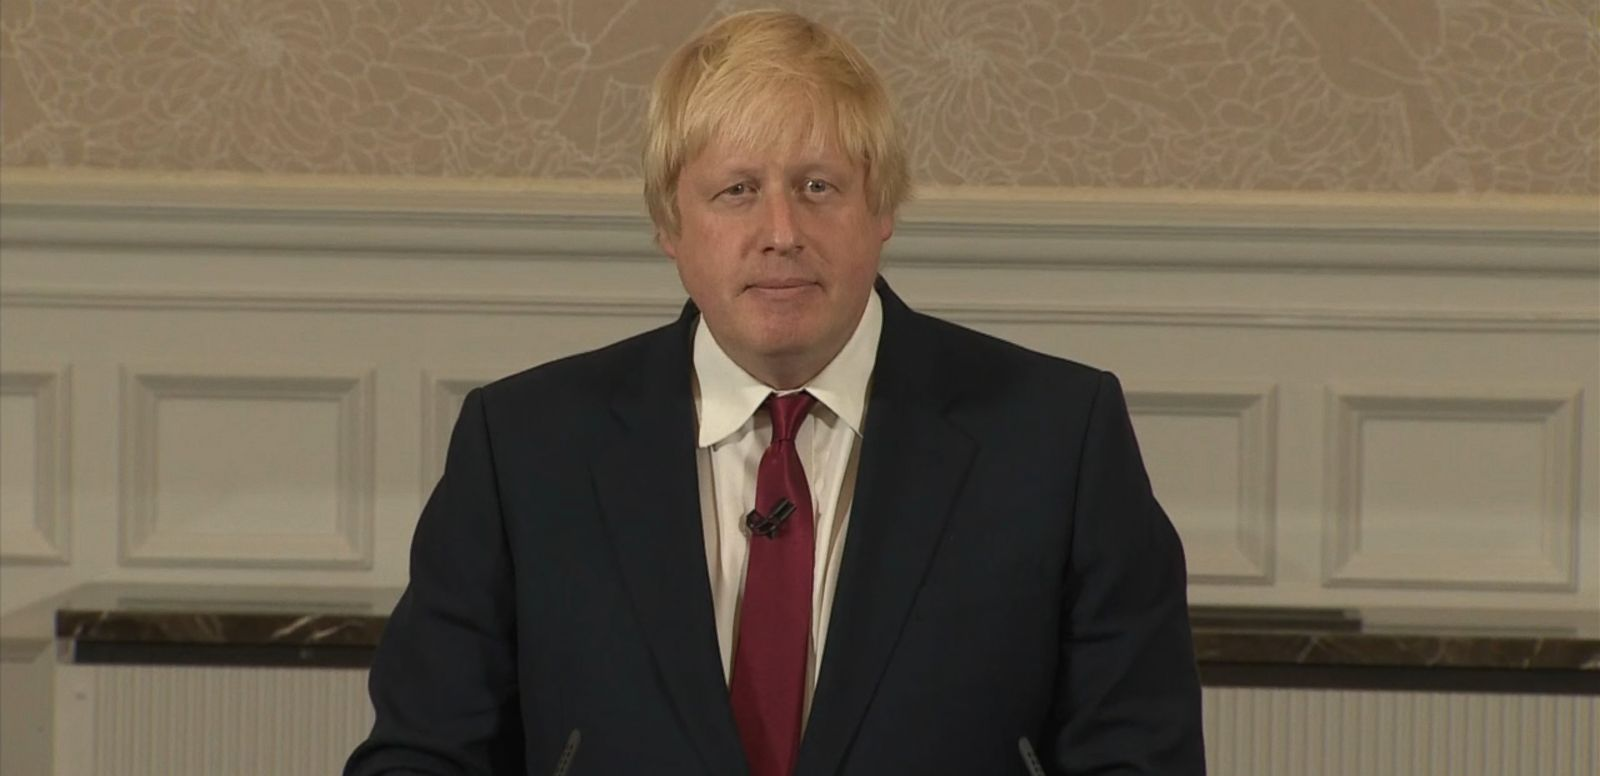 VIDEO: The battle for the United Kingdom's Conservative Party leadership has been transformed after former London Mayor Boris Johnson, who helped guide the U.K. out of the European Union, unexpectedly announced that he will not run for prime minister.